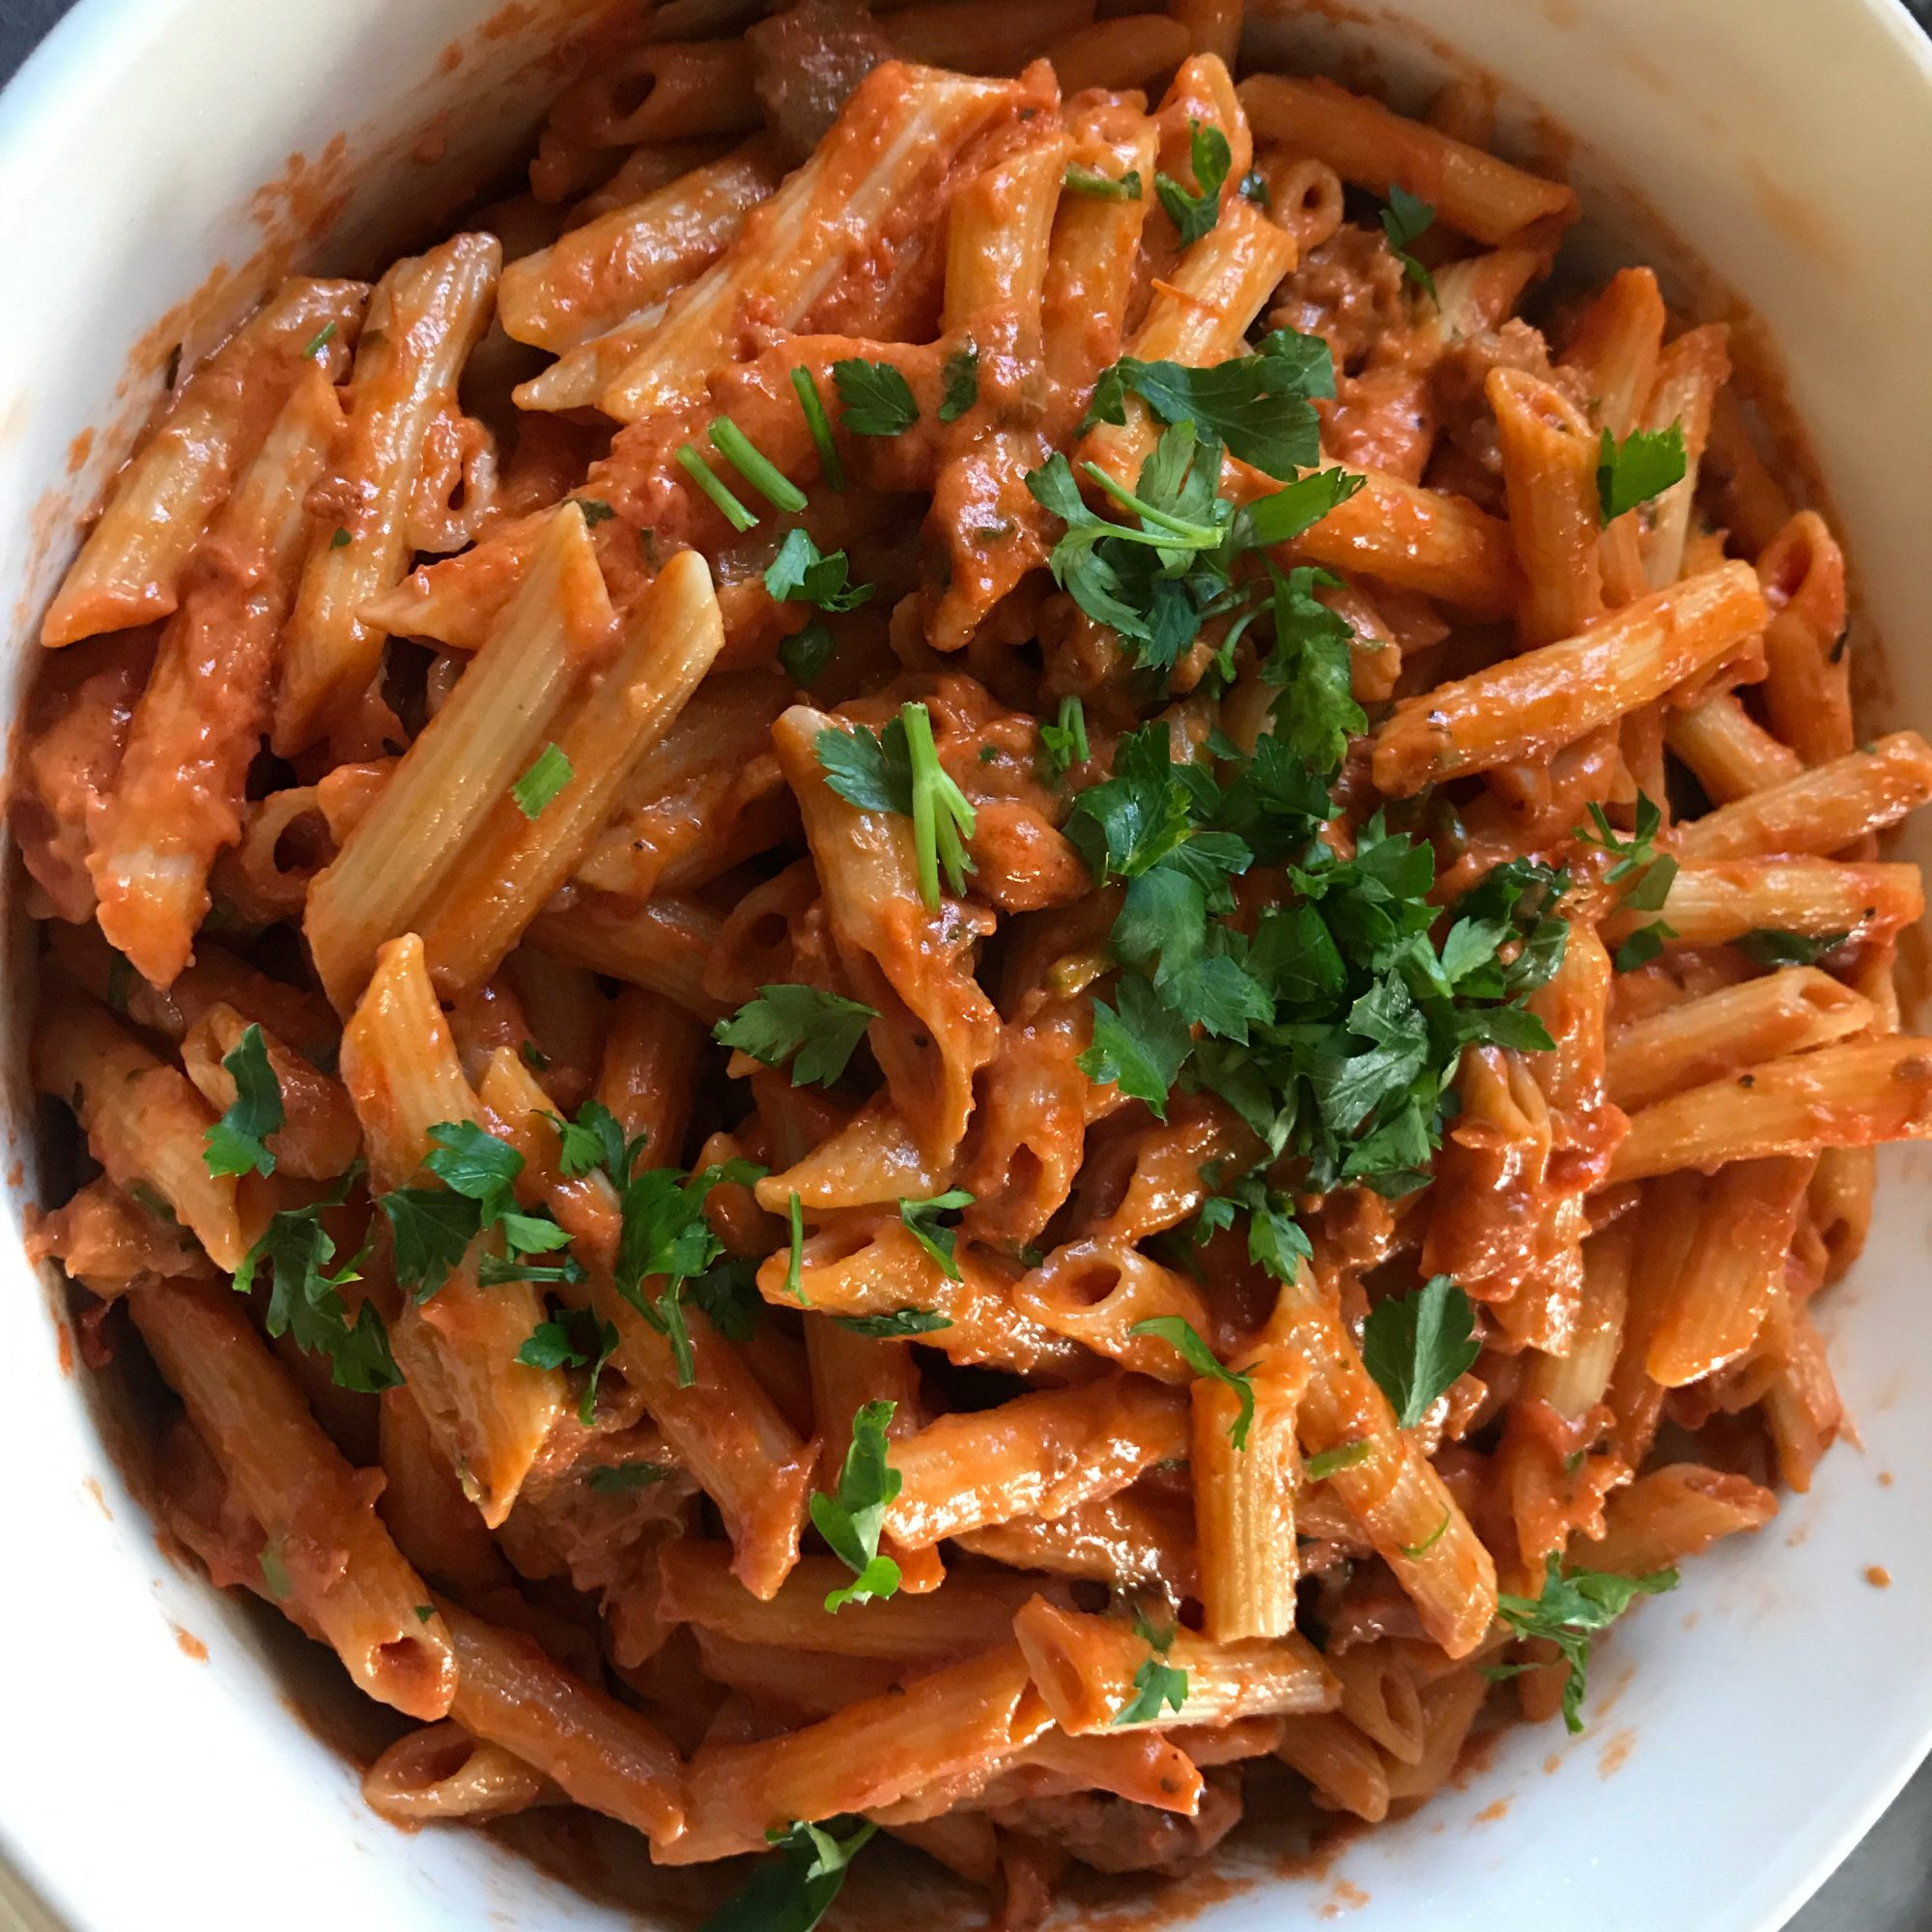 Penne with Spicy Vodka Tomato Cream Sauce